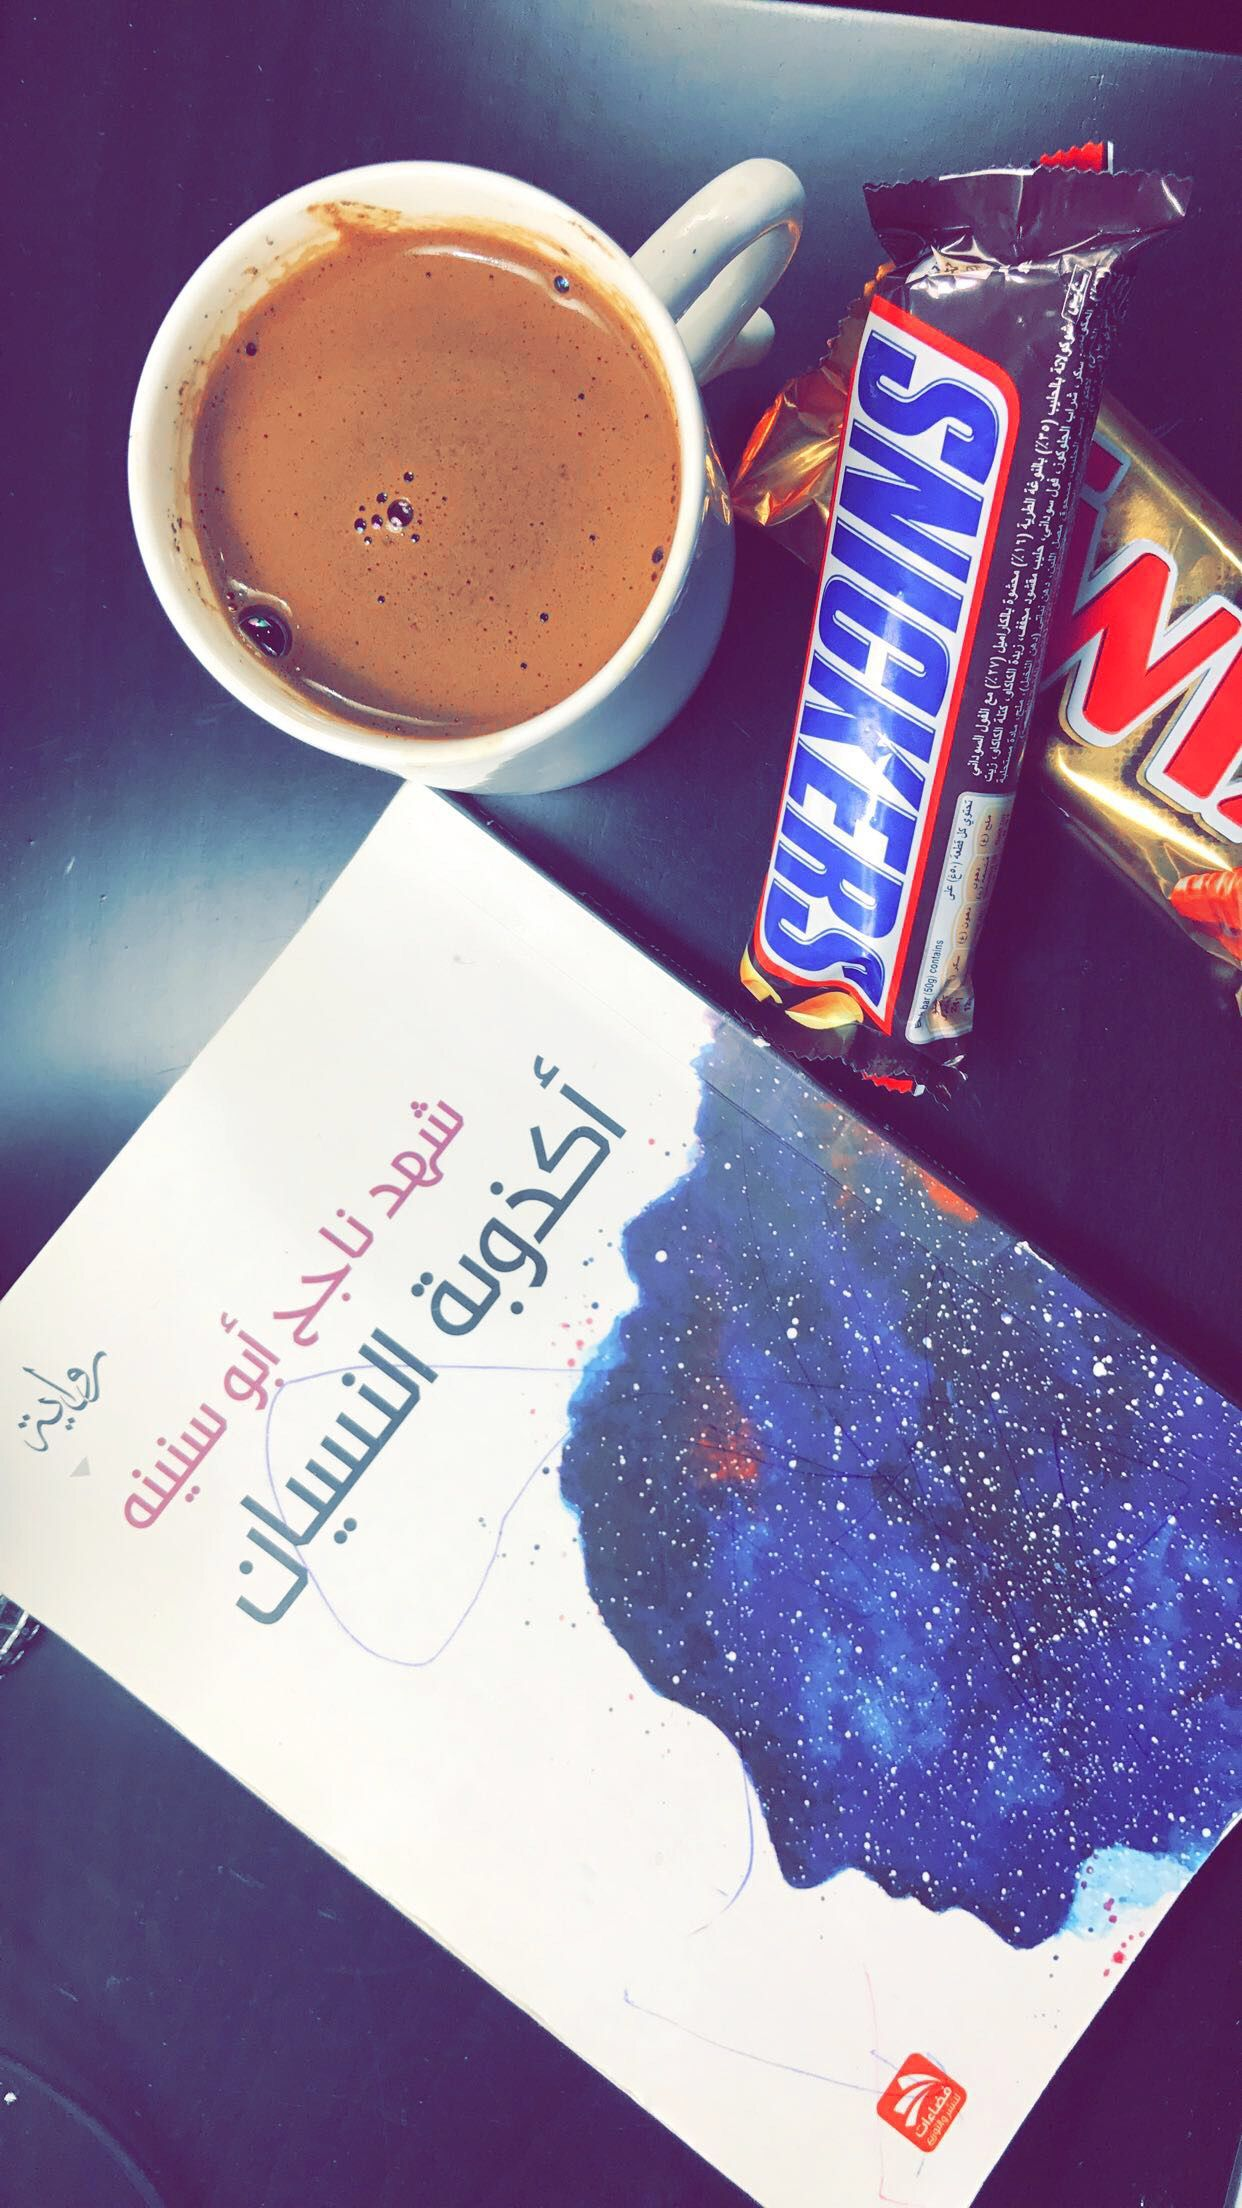 Pin By Noornot On رواق Inspirational Books Book Qoutes Arabic Books